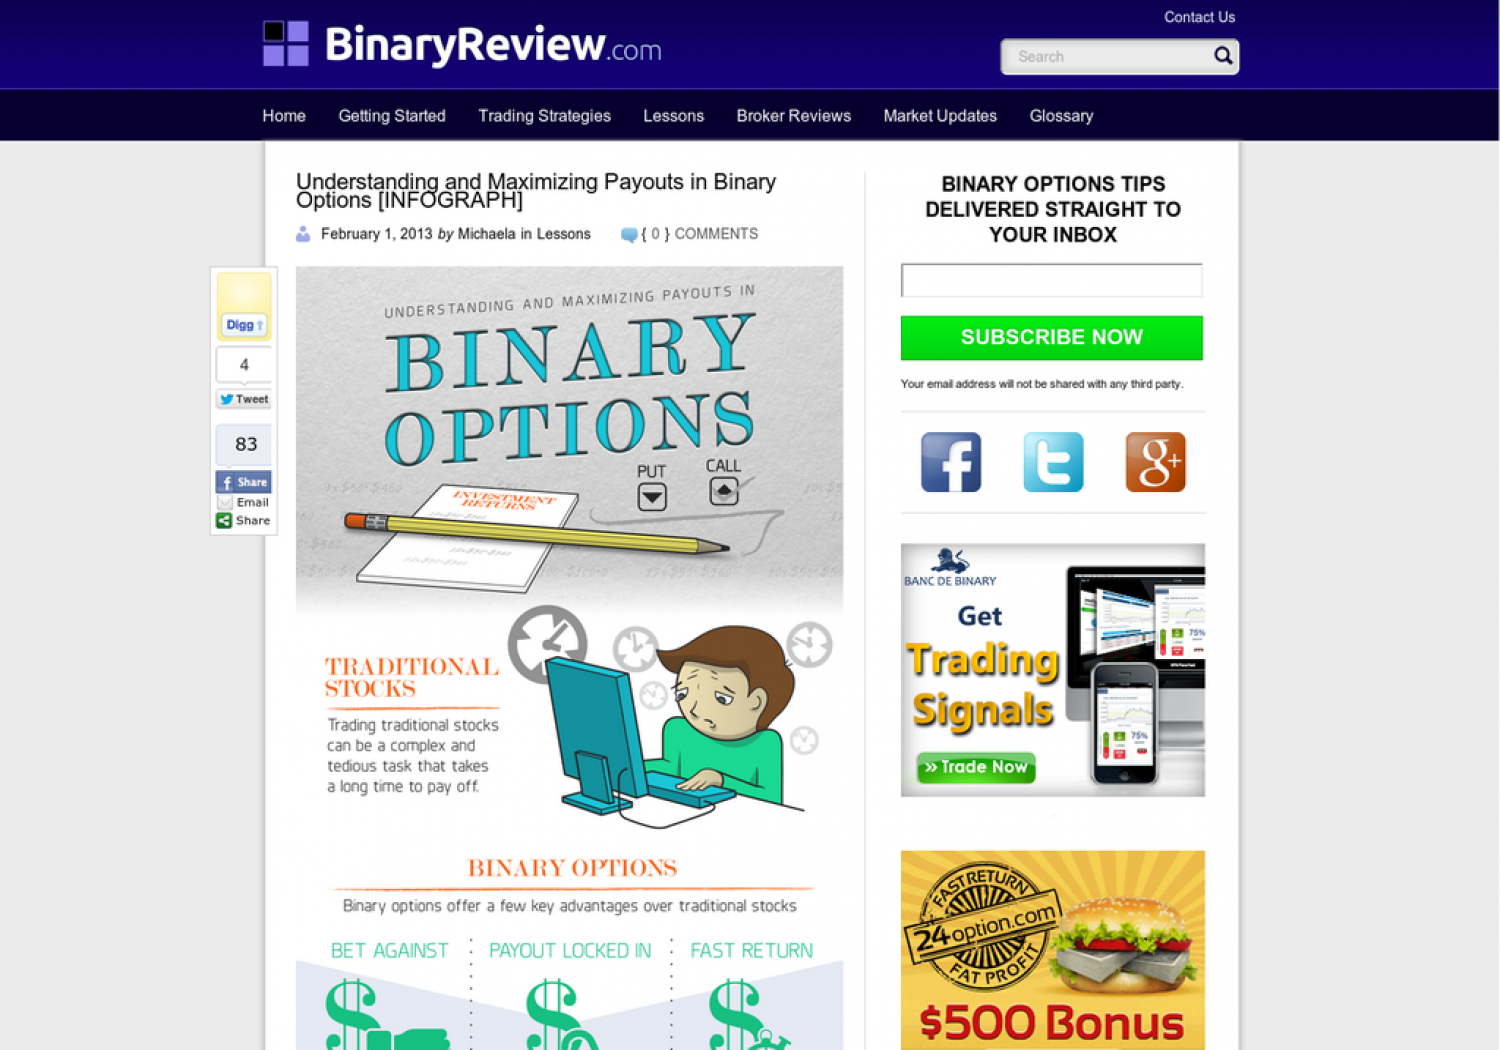 Ce este binary options